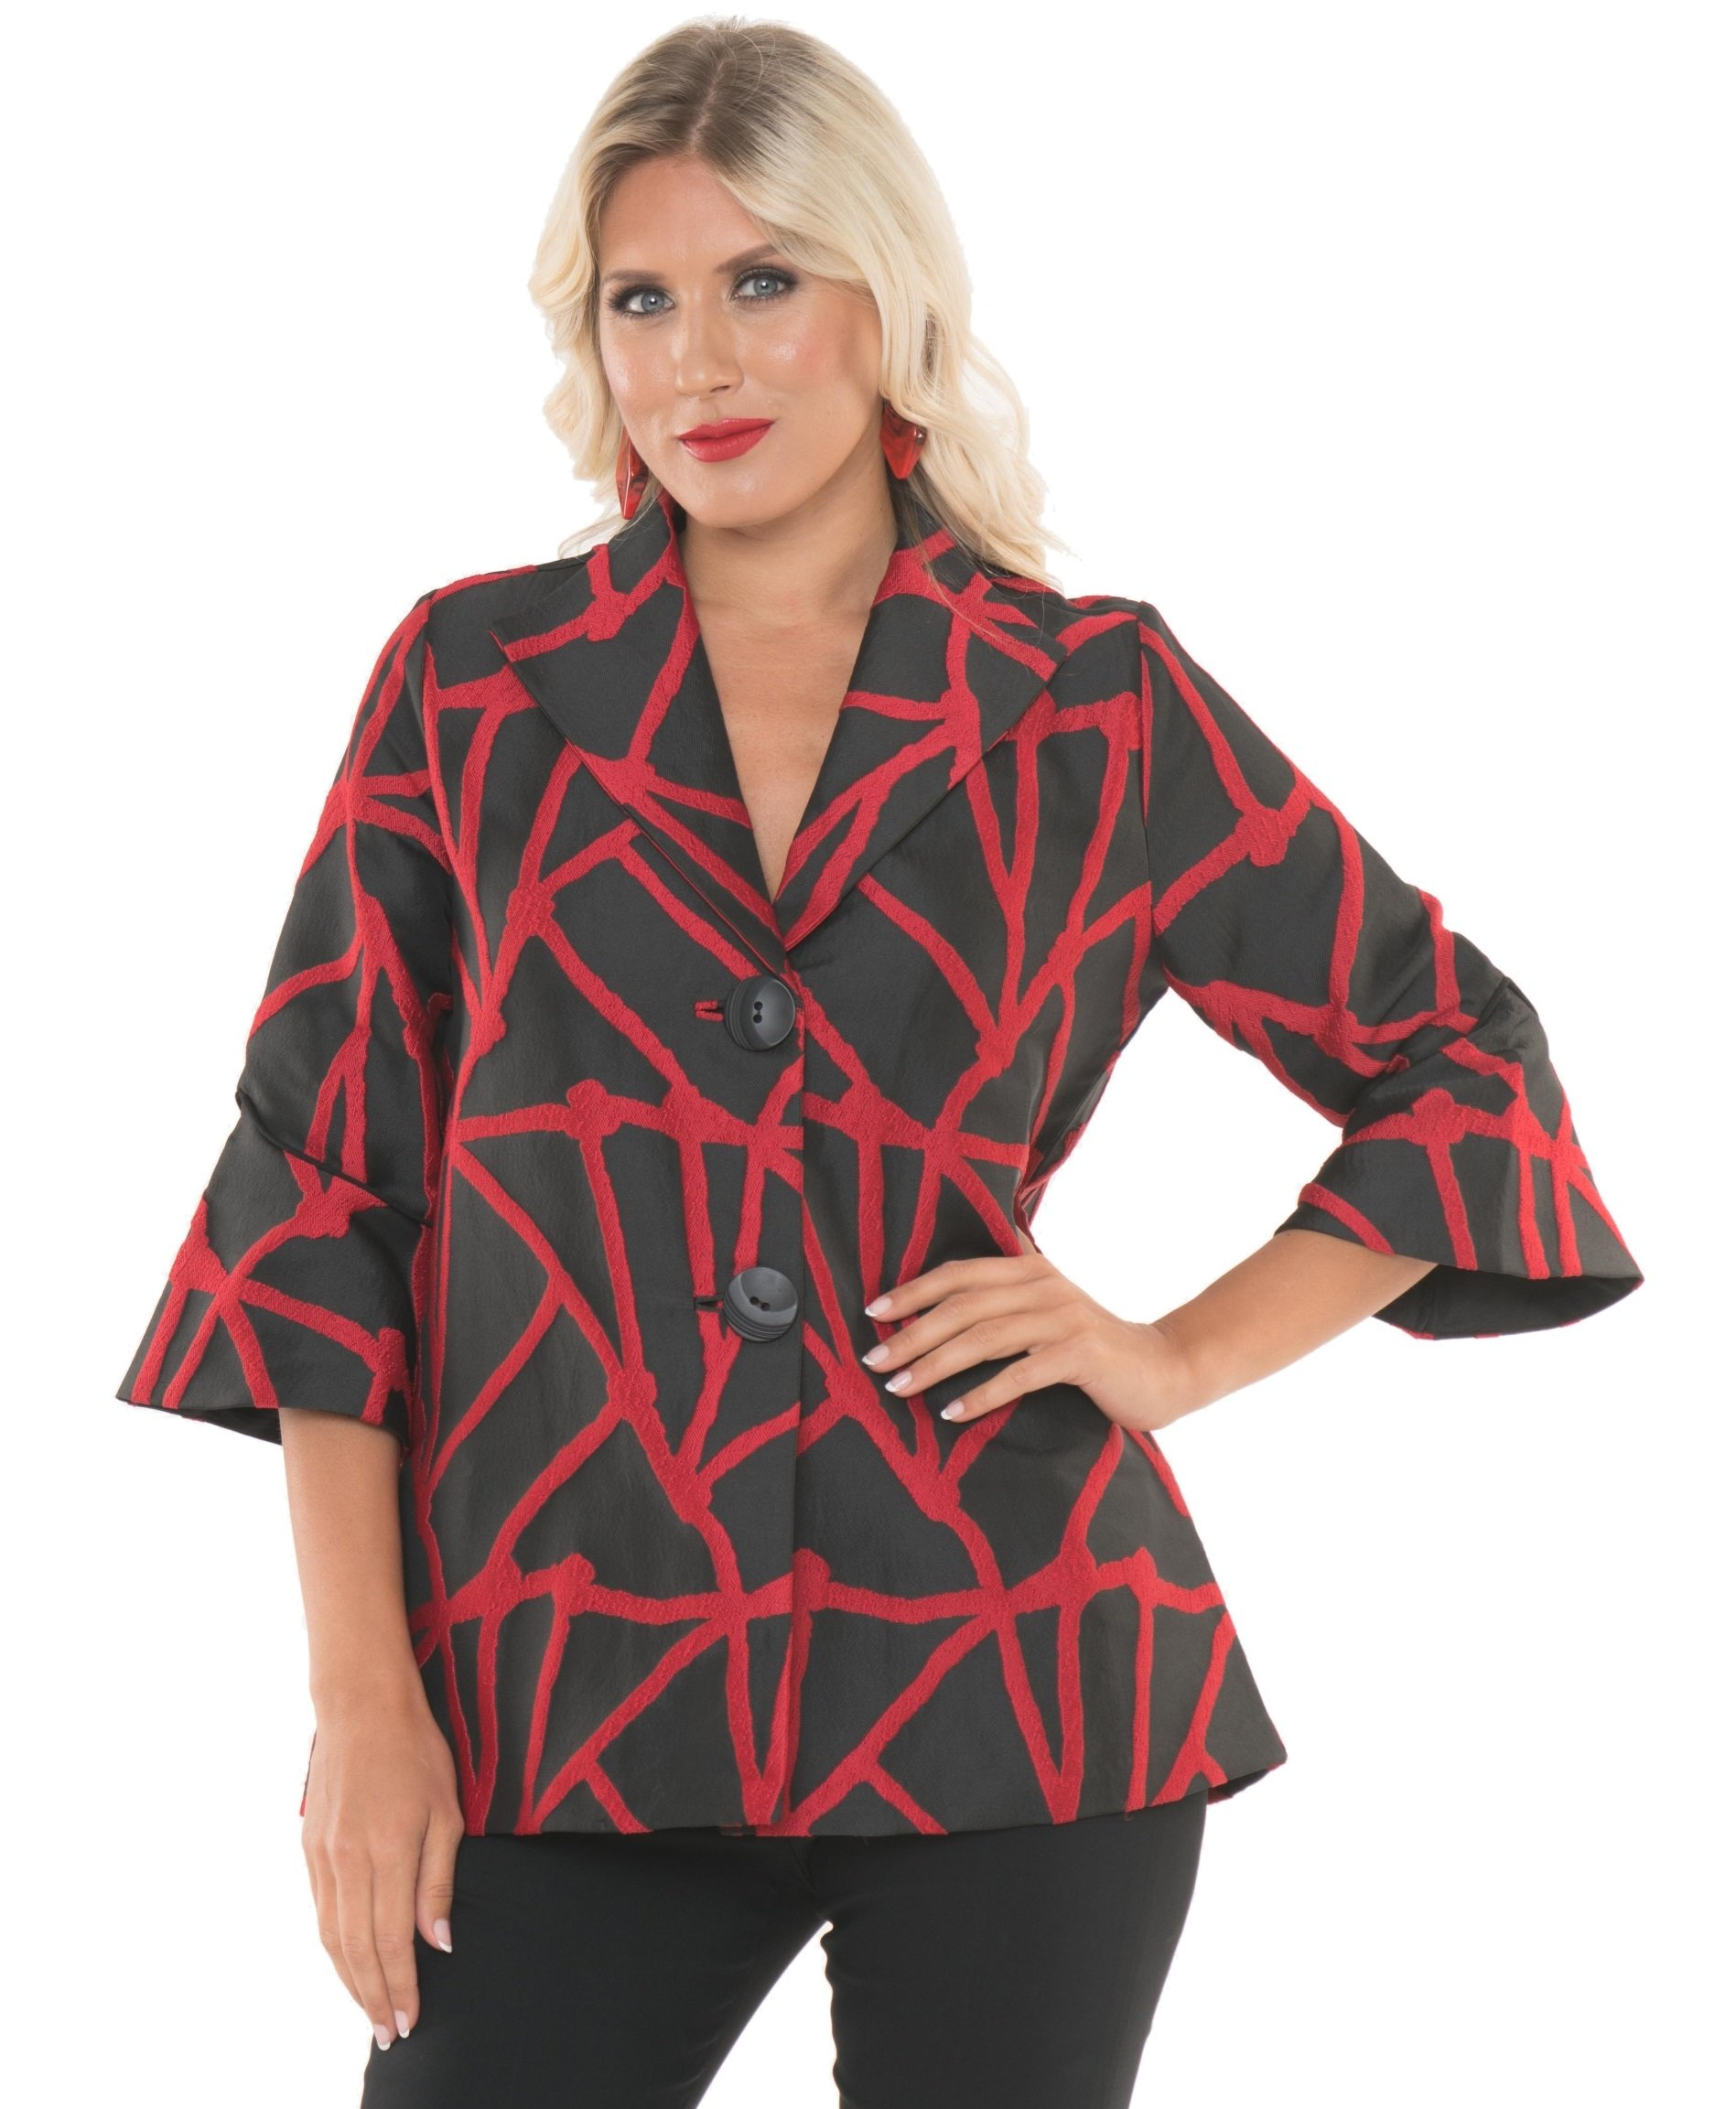 Lior Paris Women's Black Red Geometric Pattern Jacket Coat Blazer with Two bottom's and Swing Sleeves